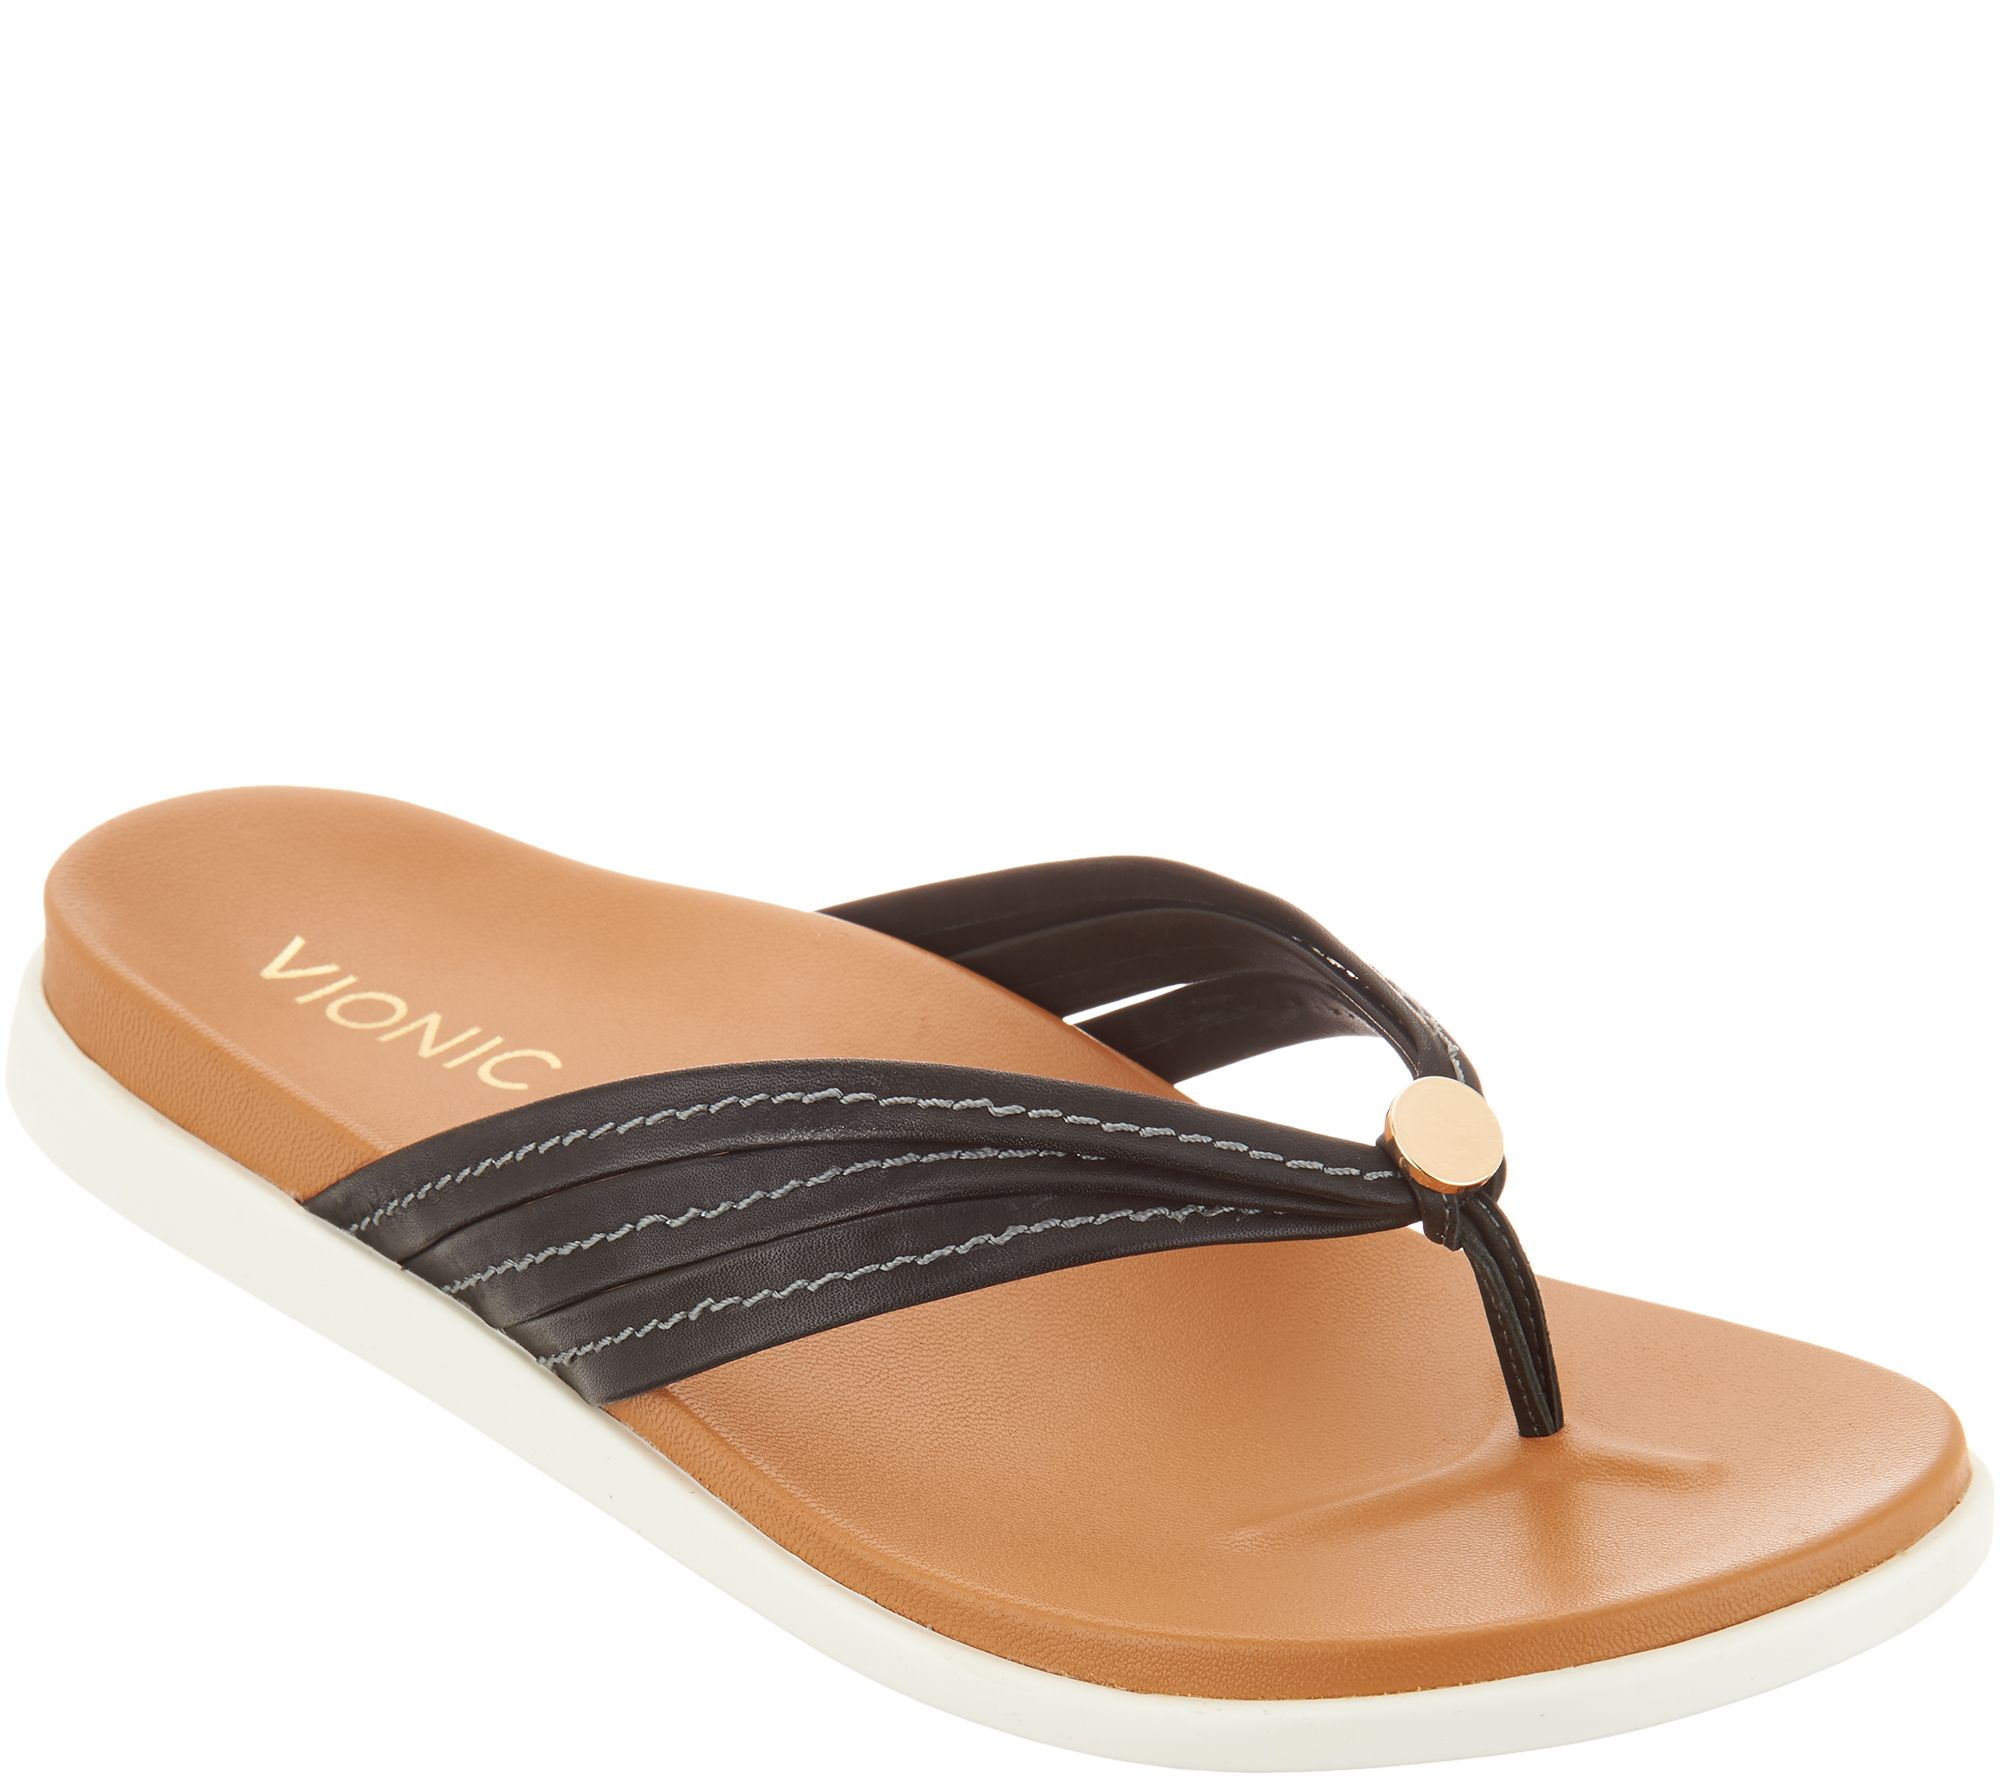 cf63e30bf62a Vionic Leather Triple-Strap Thong Sandals - Catalina - Page 1 — QVC.com